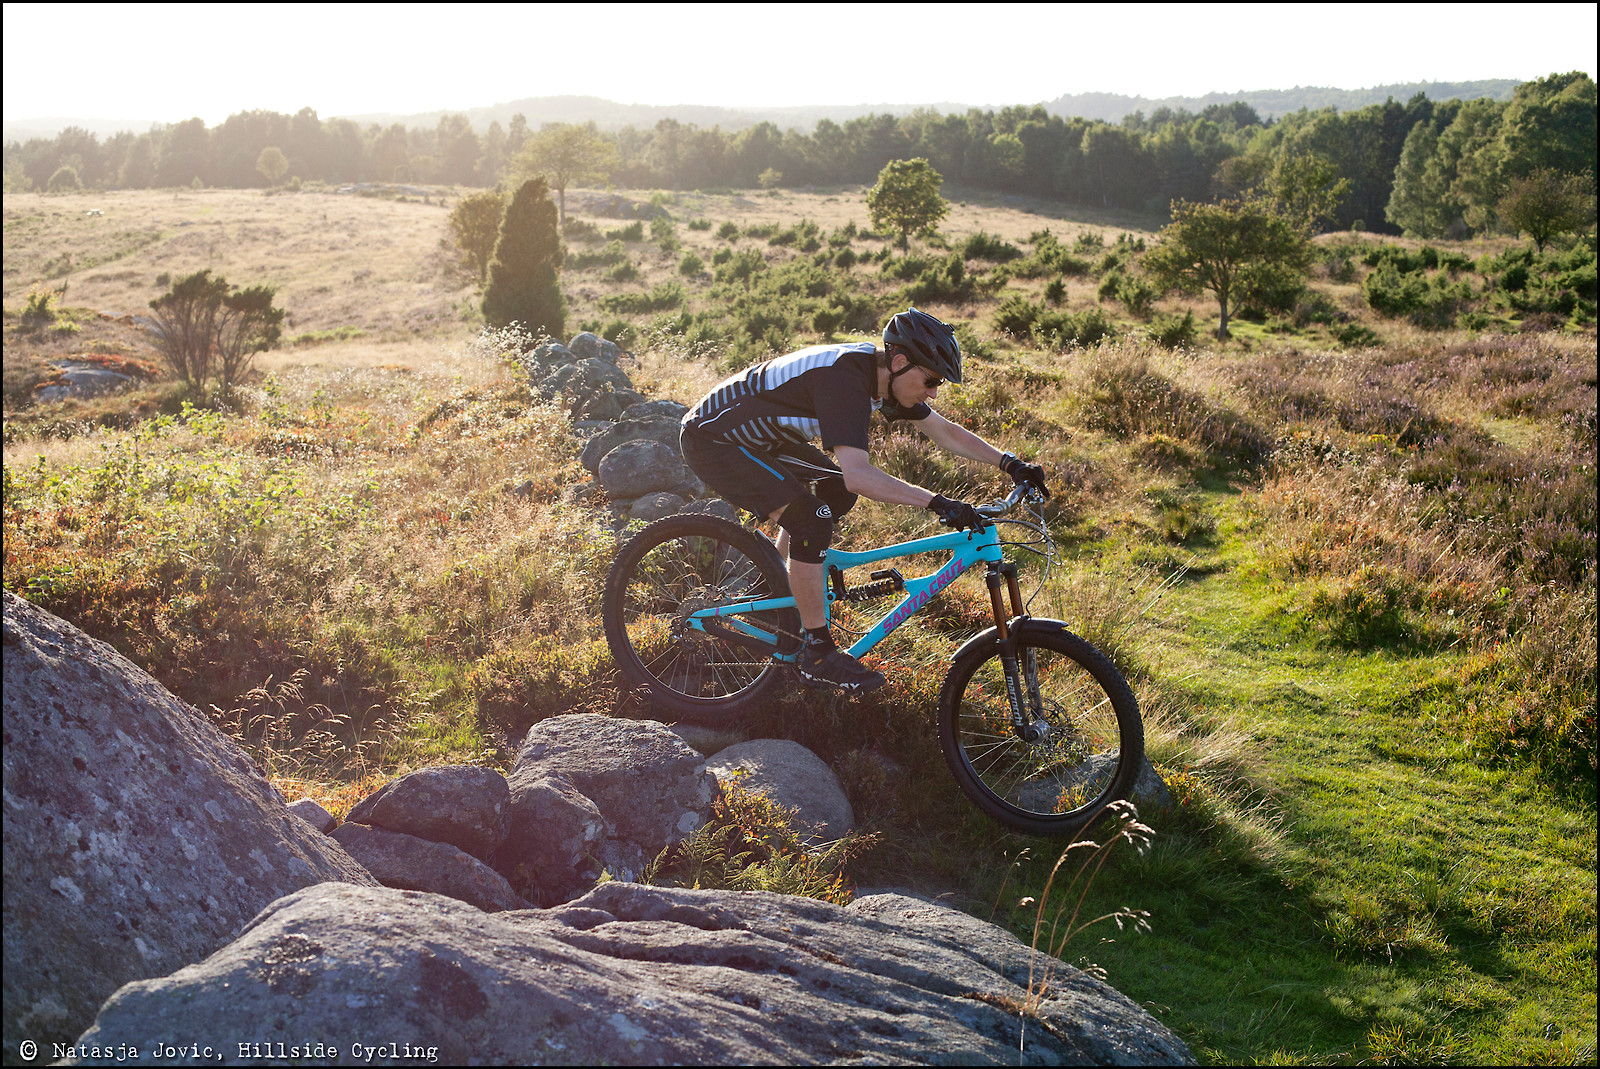 Sunset in Sweden. - Hillside Cycling - Mountain Biking Pictures - Vital MTB